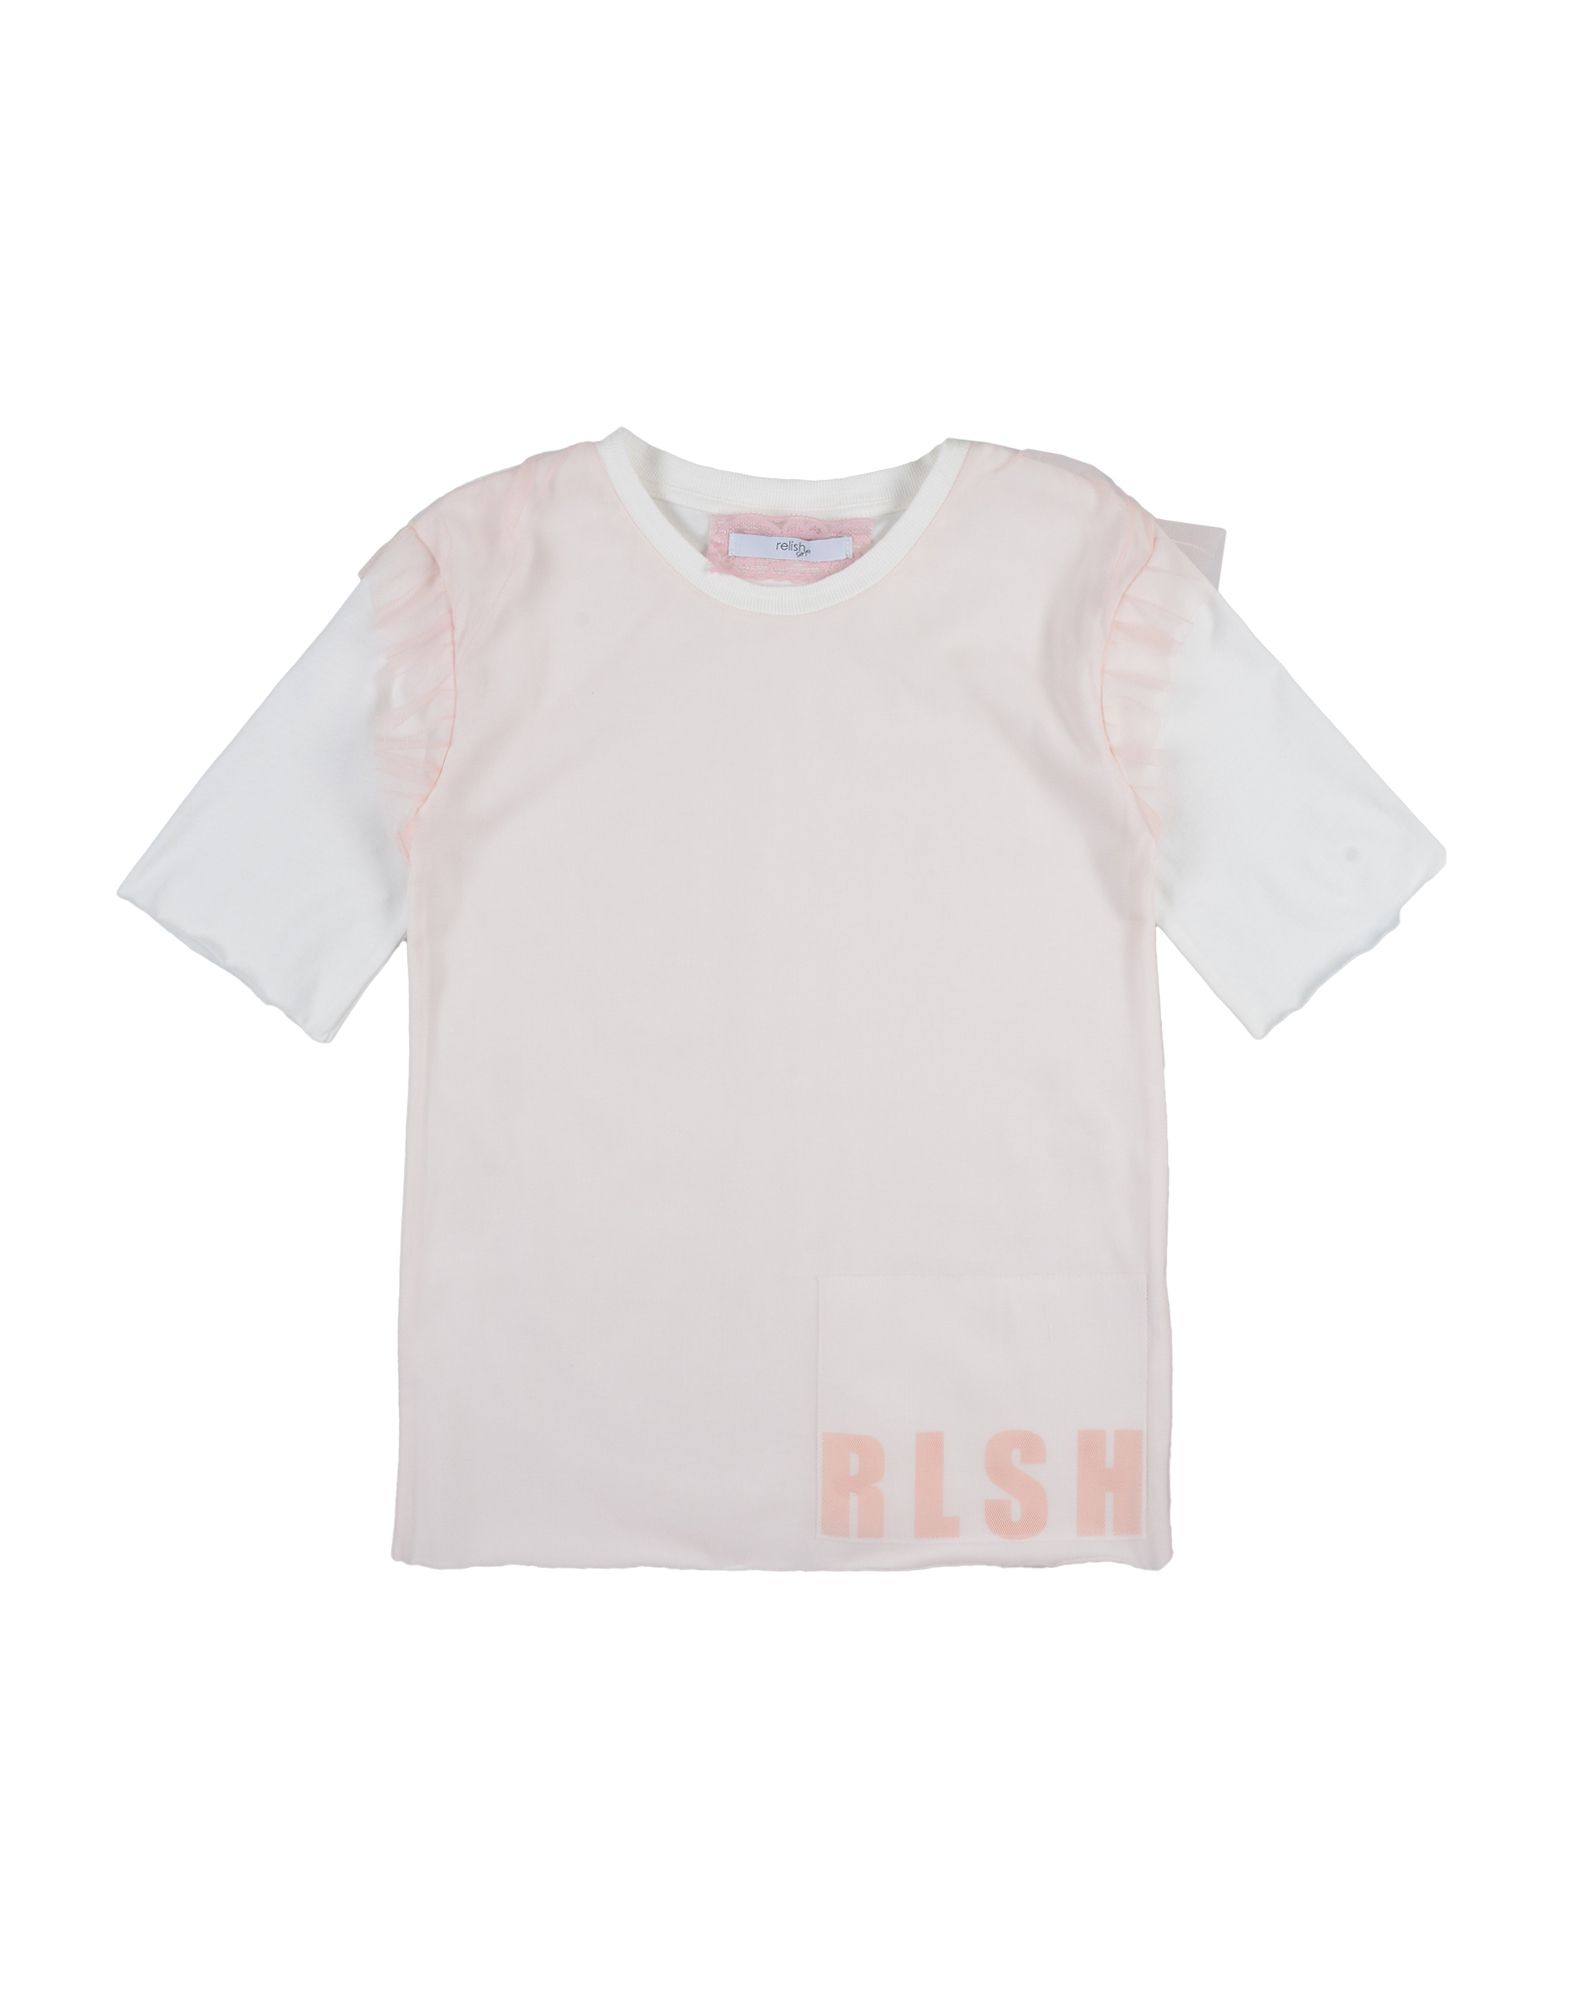 Relish Kids' T-shirts In Pink